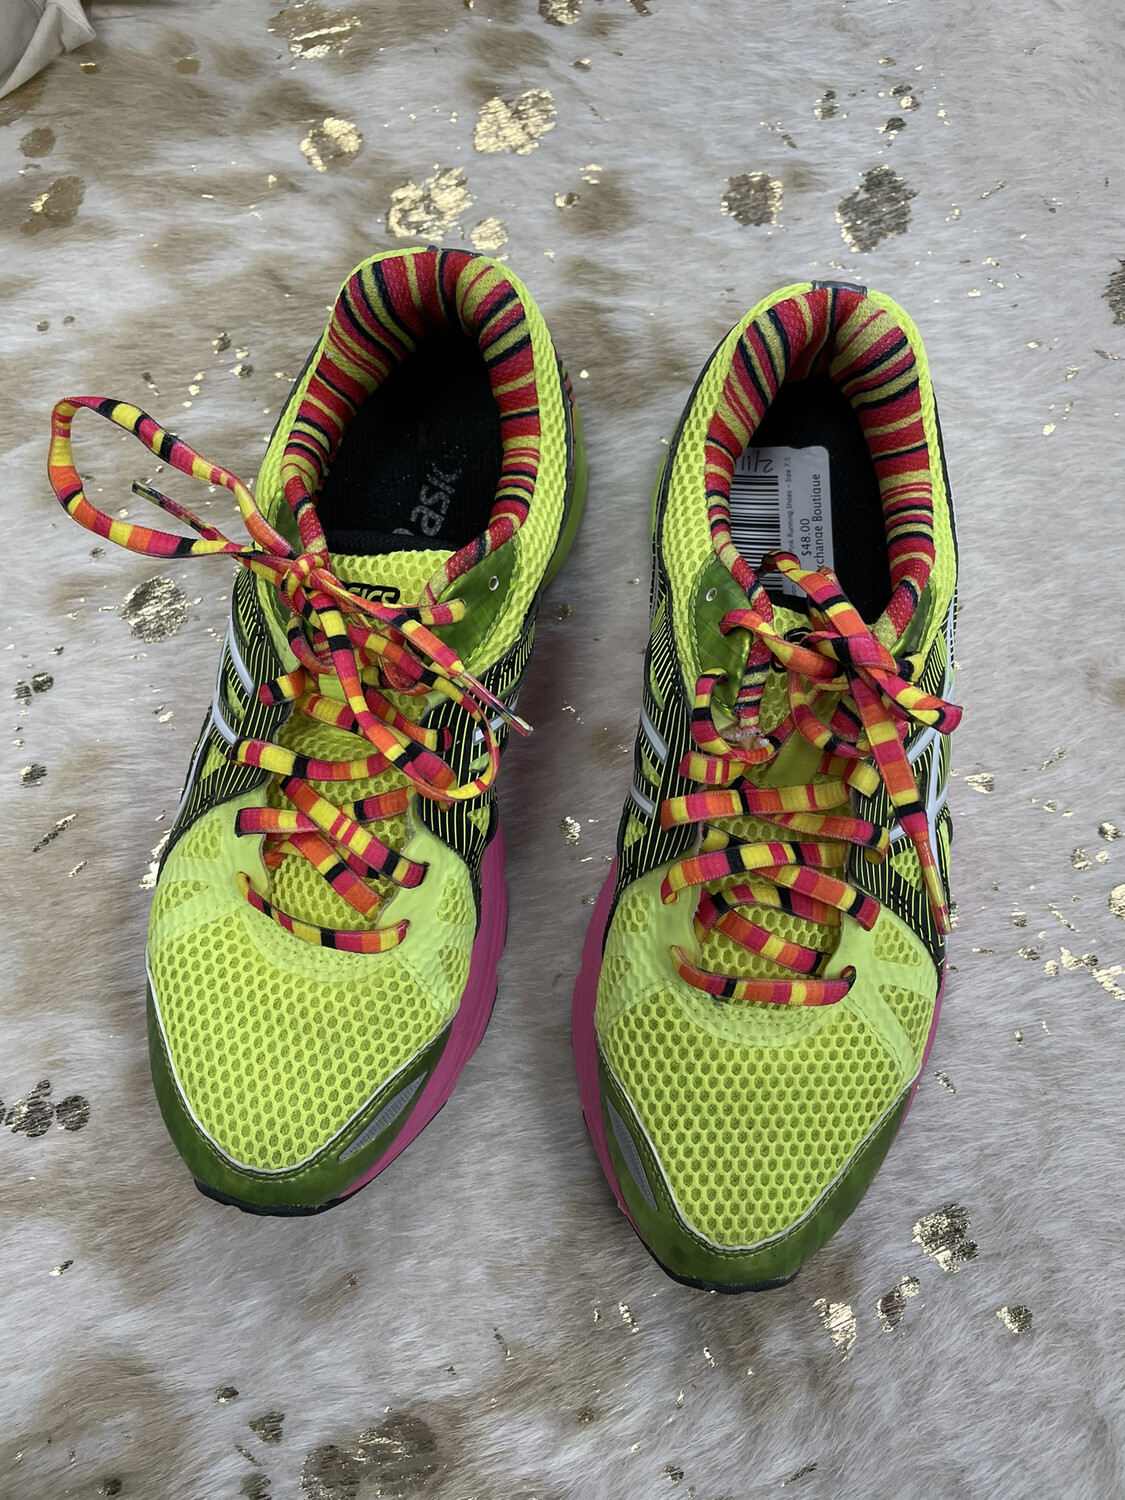 Asics Neon Yellow & Pink Running Shoes - Size 7.5